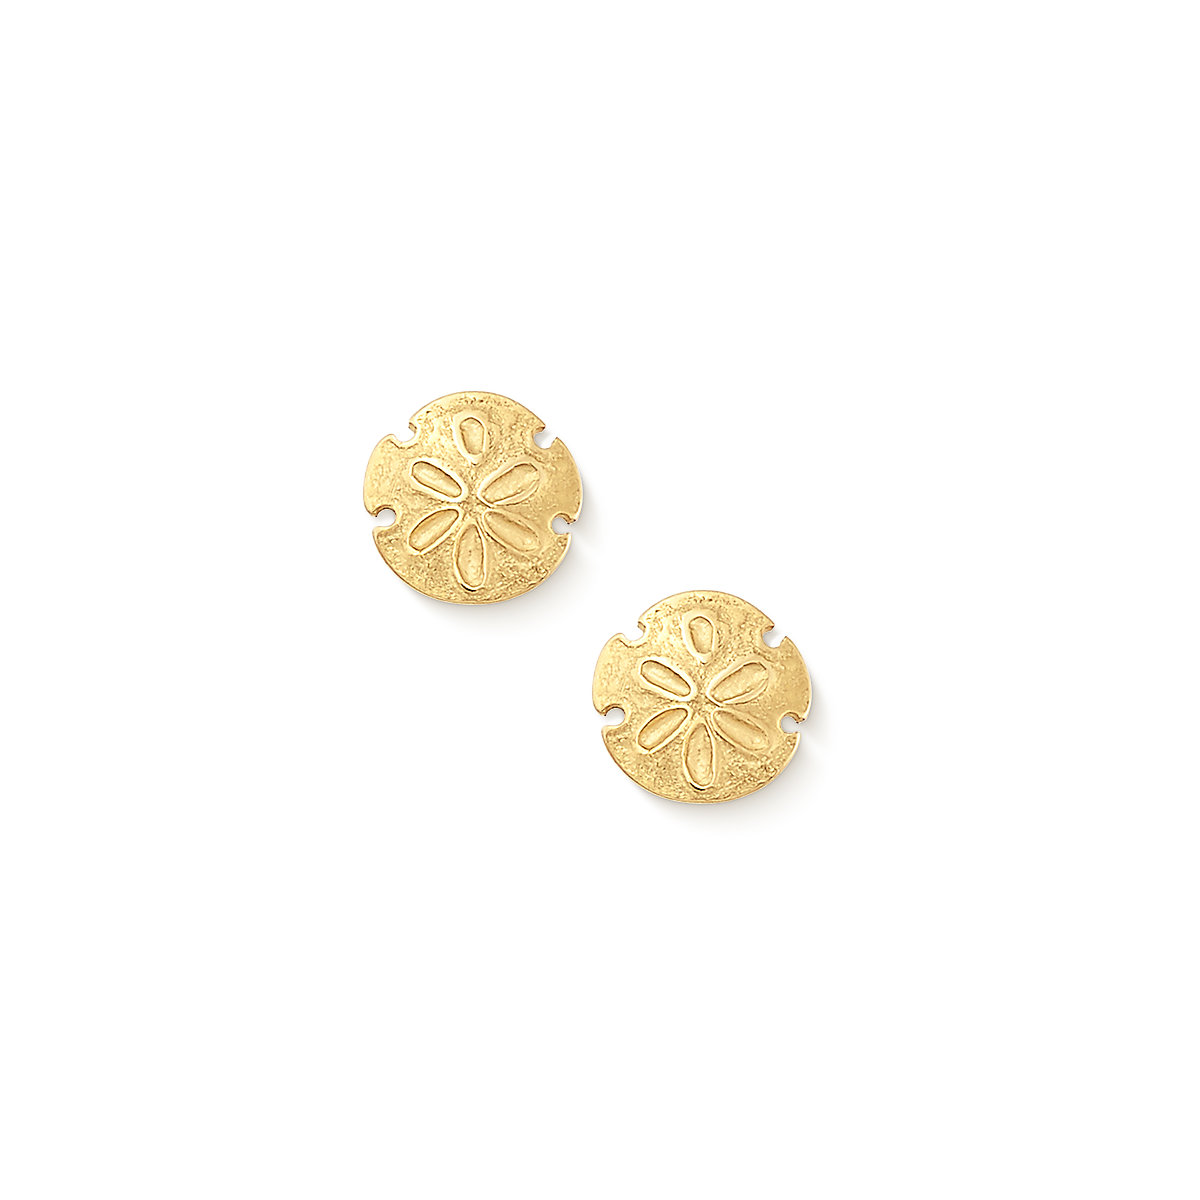 Home Earrings Sand Dollar Ear Posts Previous